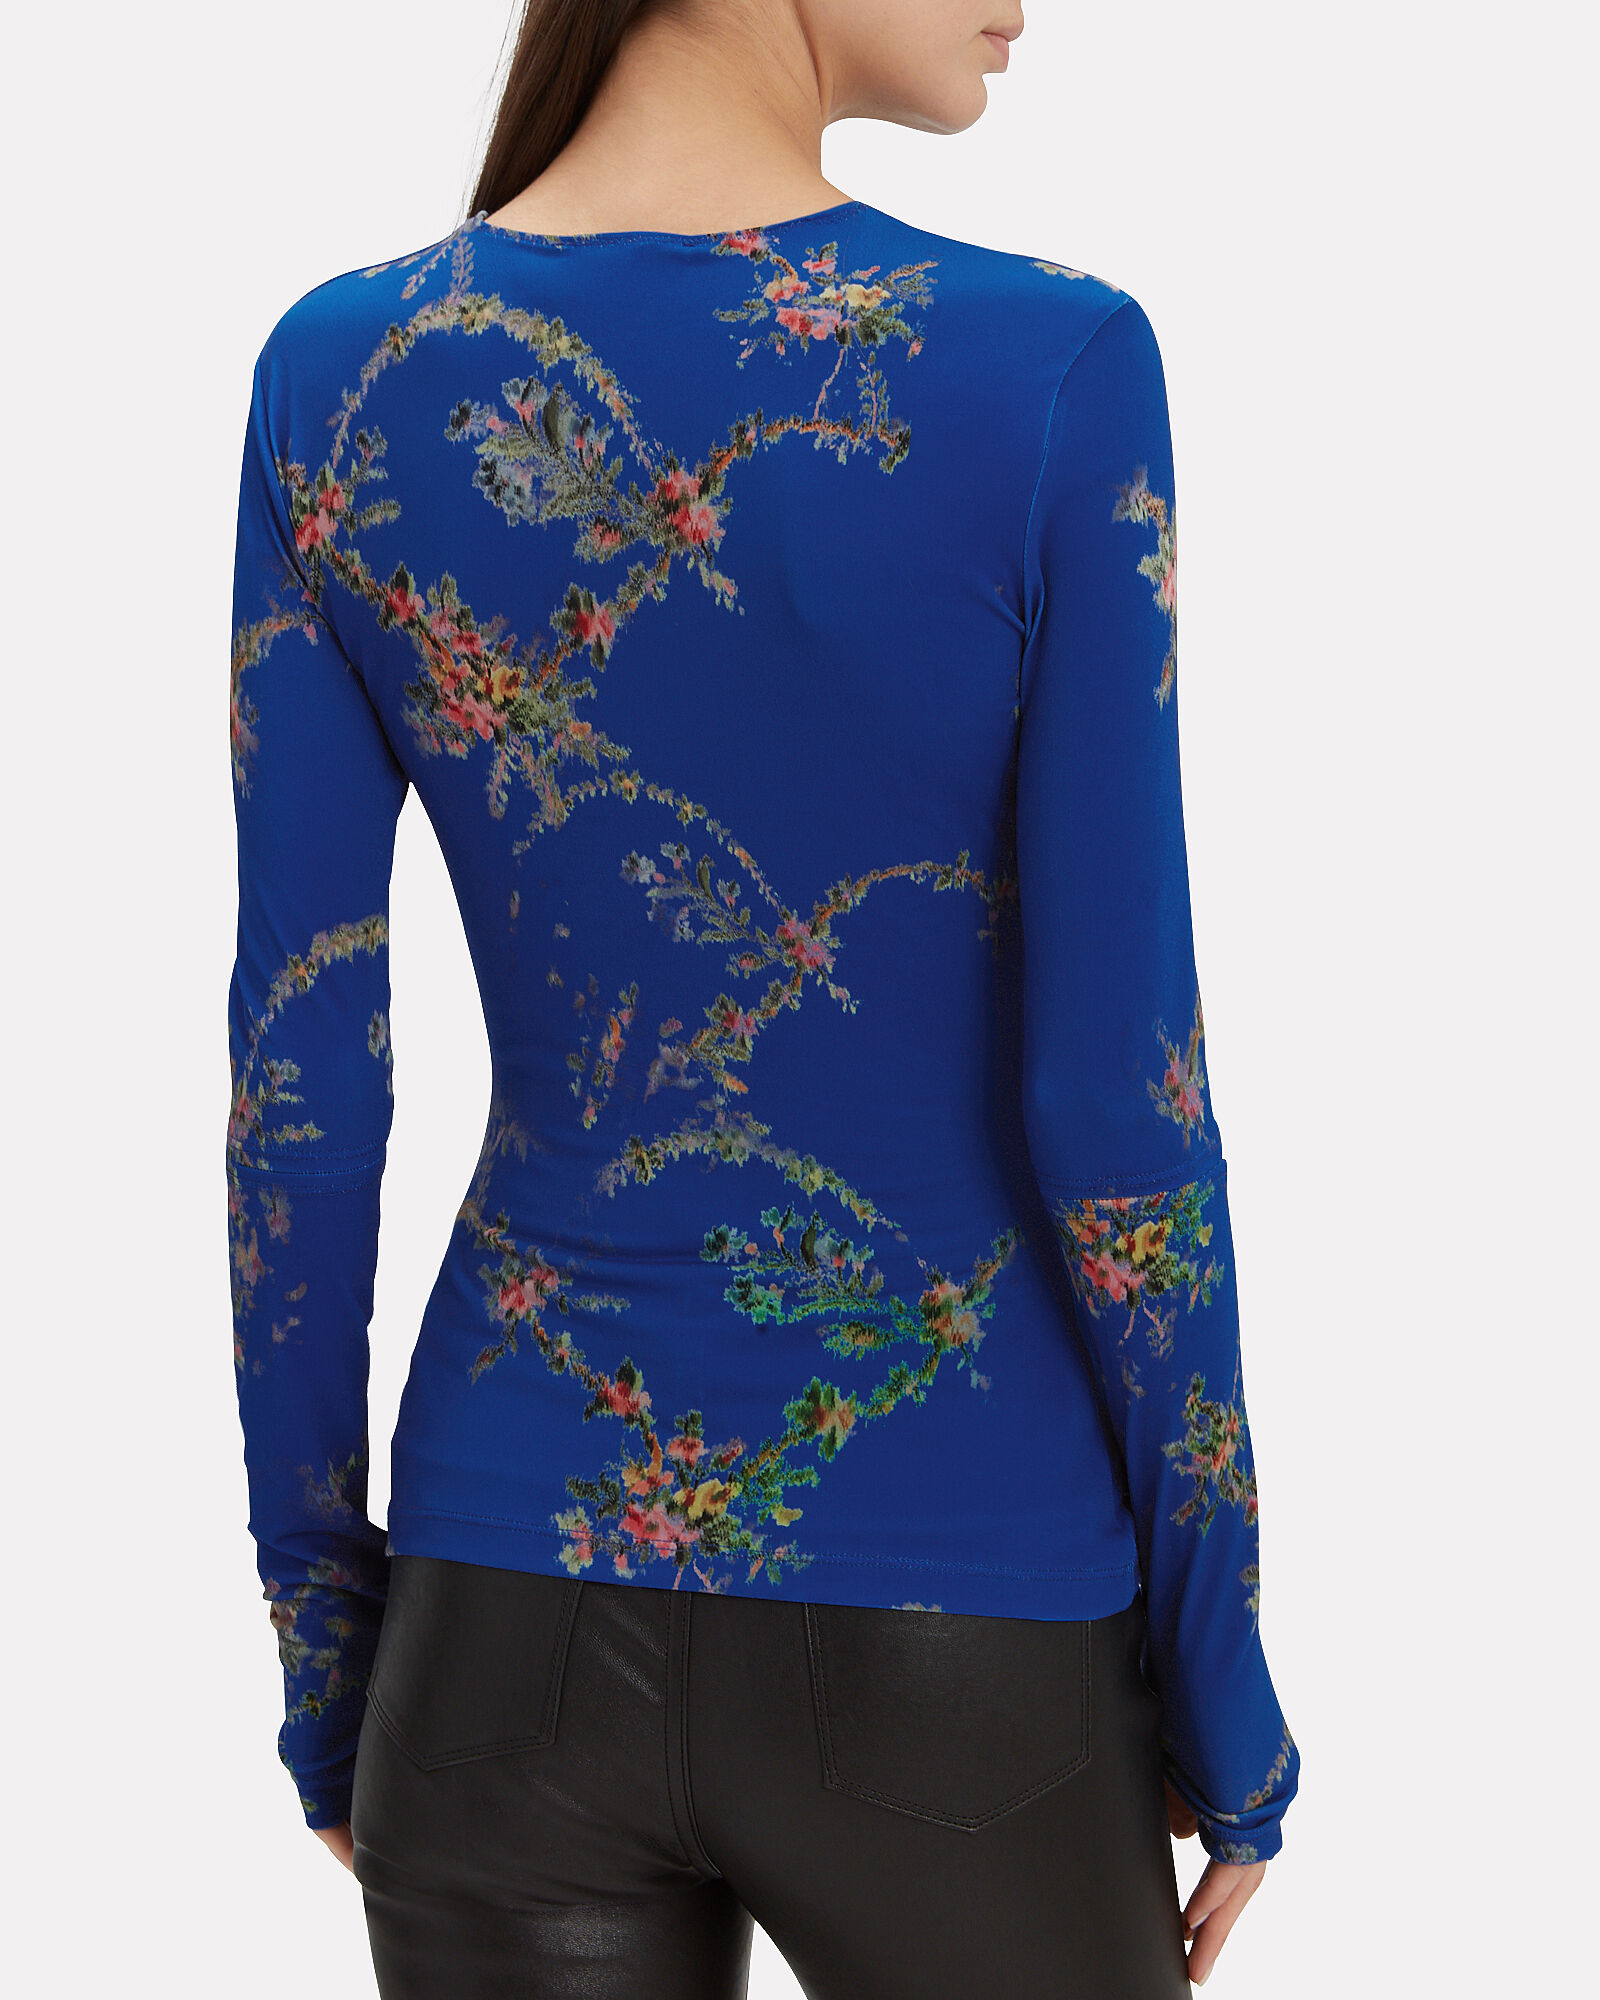 Dee Floral Top, BLUE-MED, hi-res